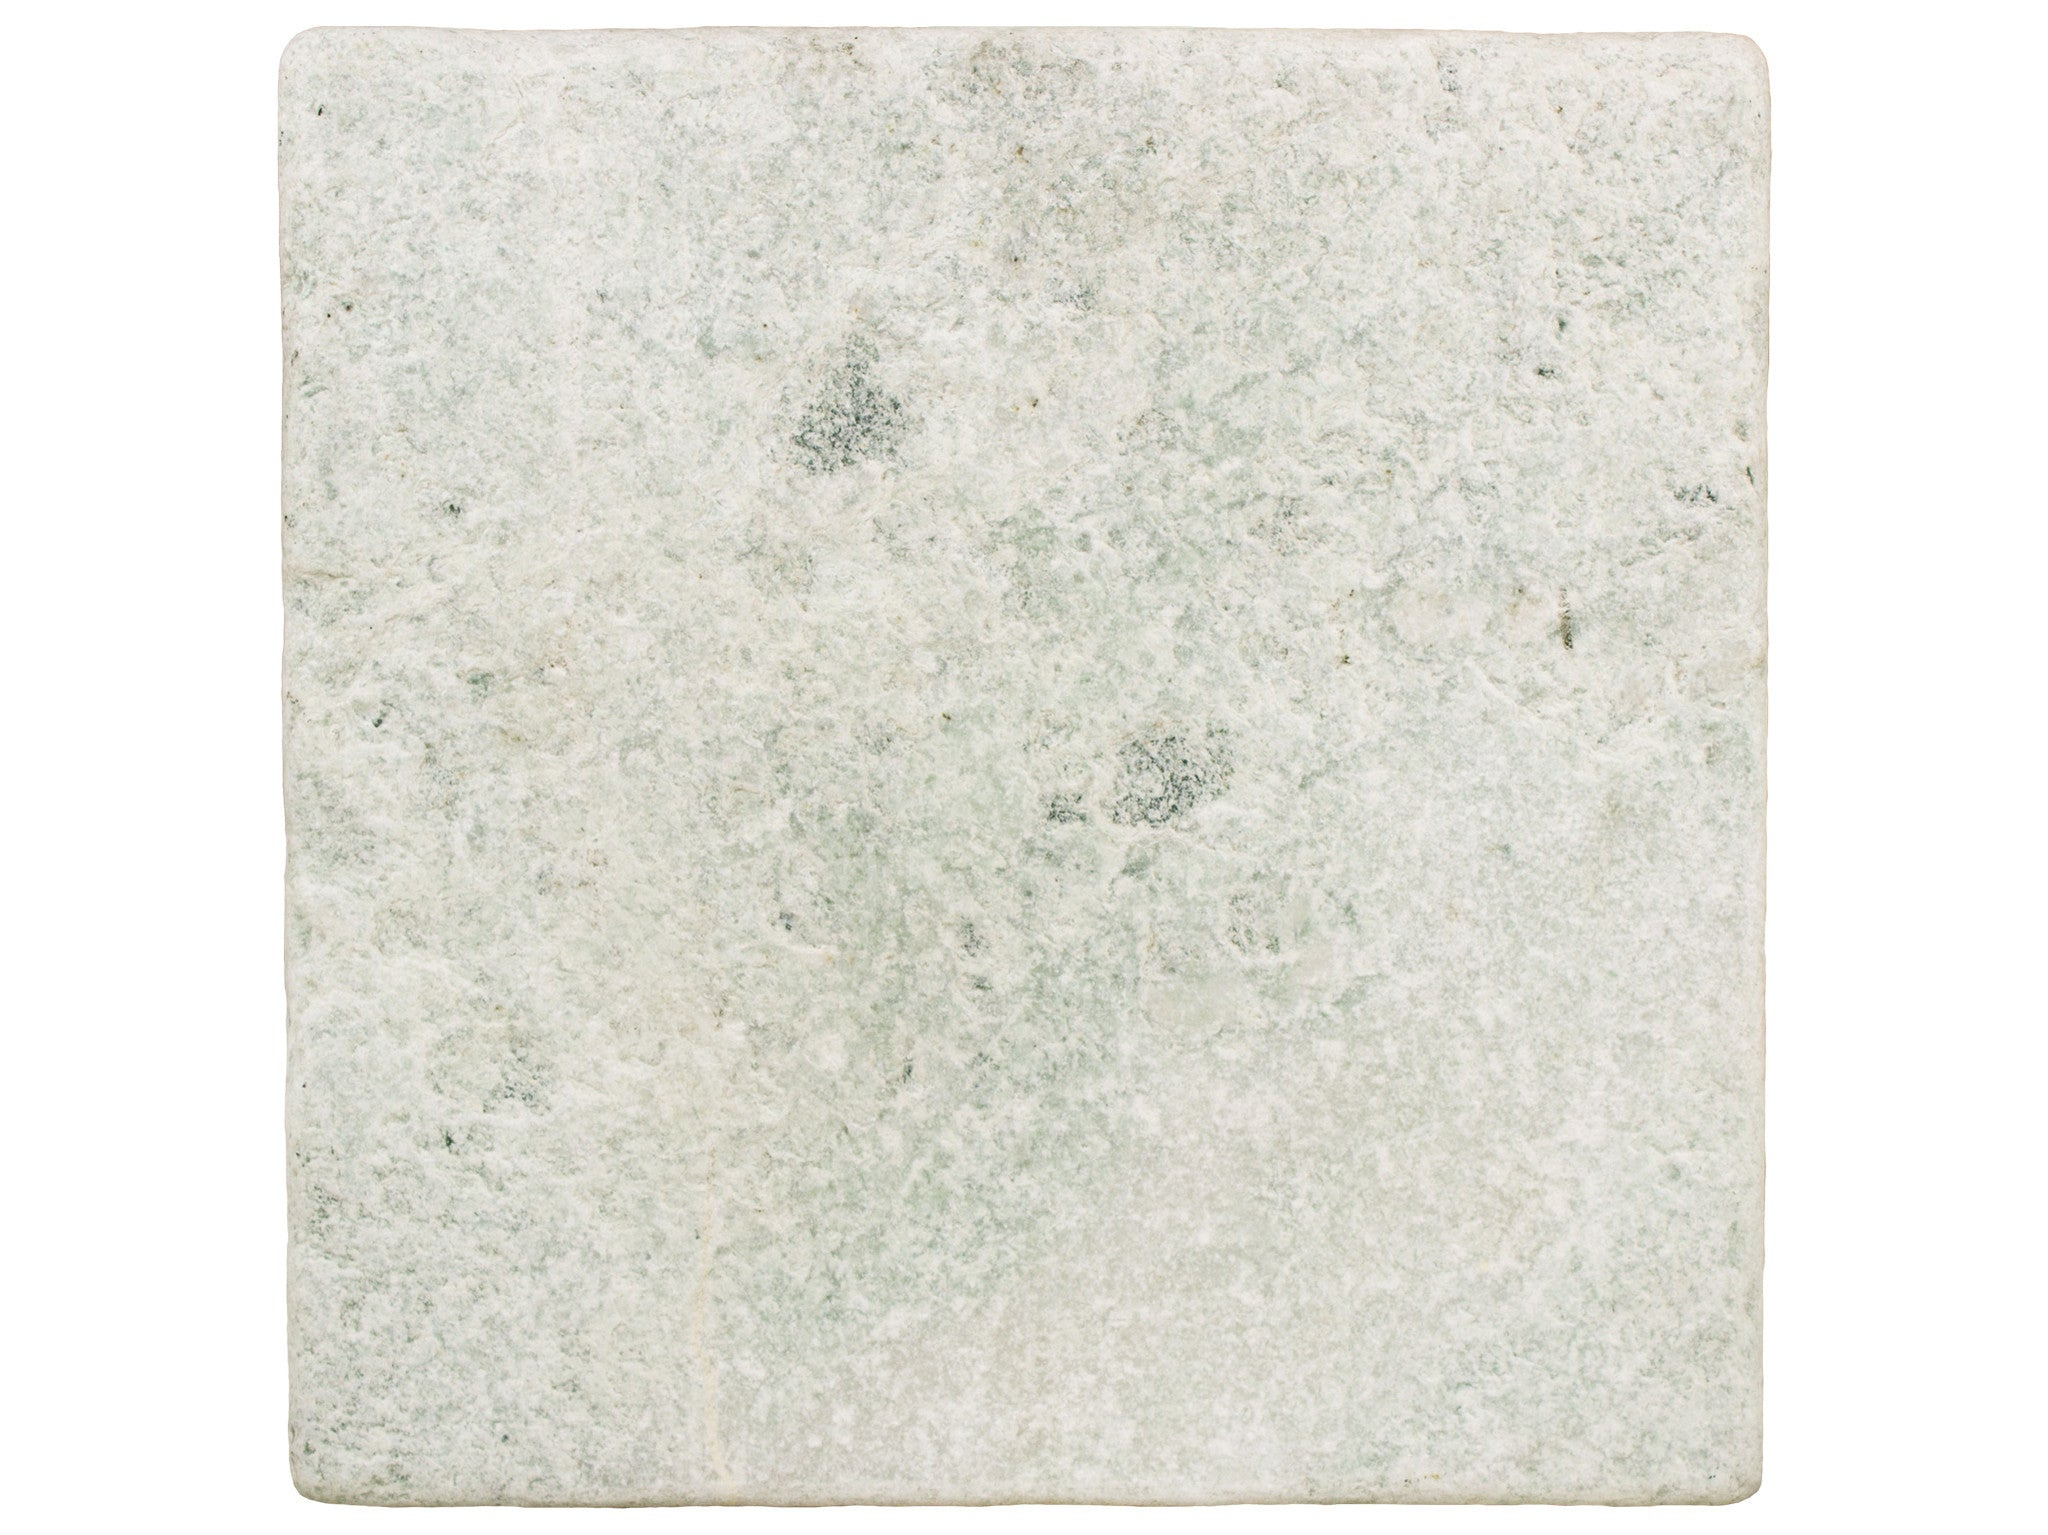 Ming Green Tumbled Marble 12x12 Mtobathandtile